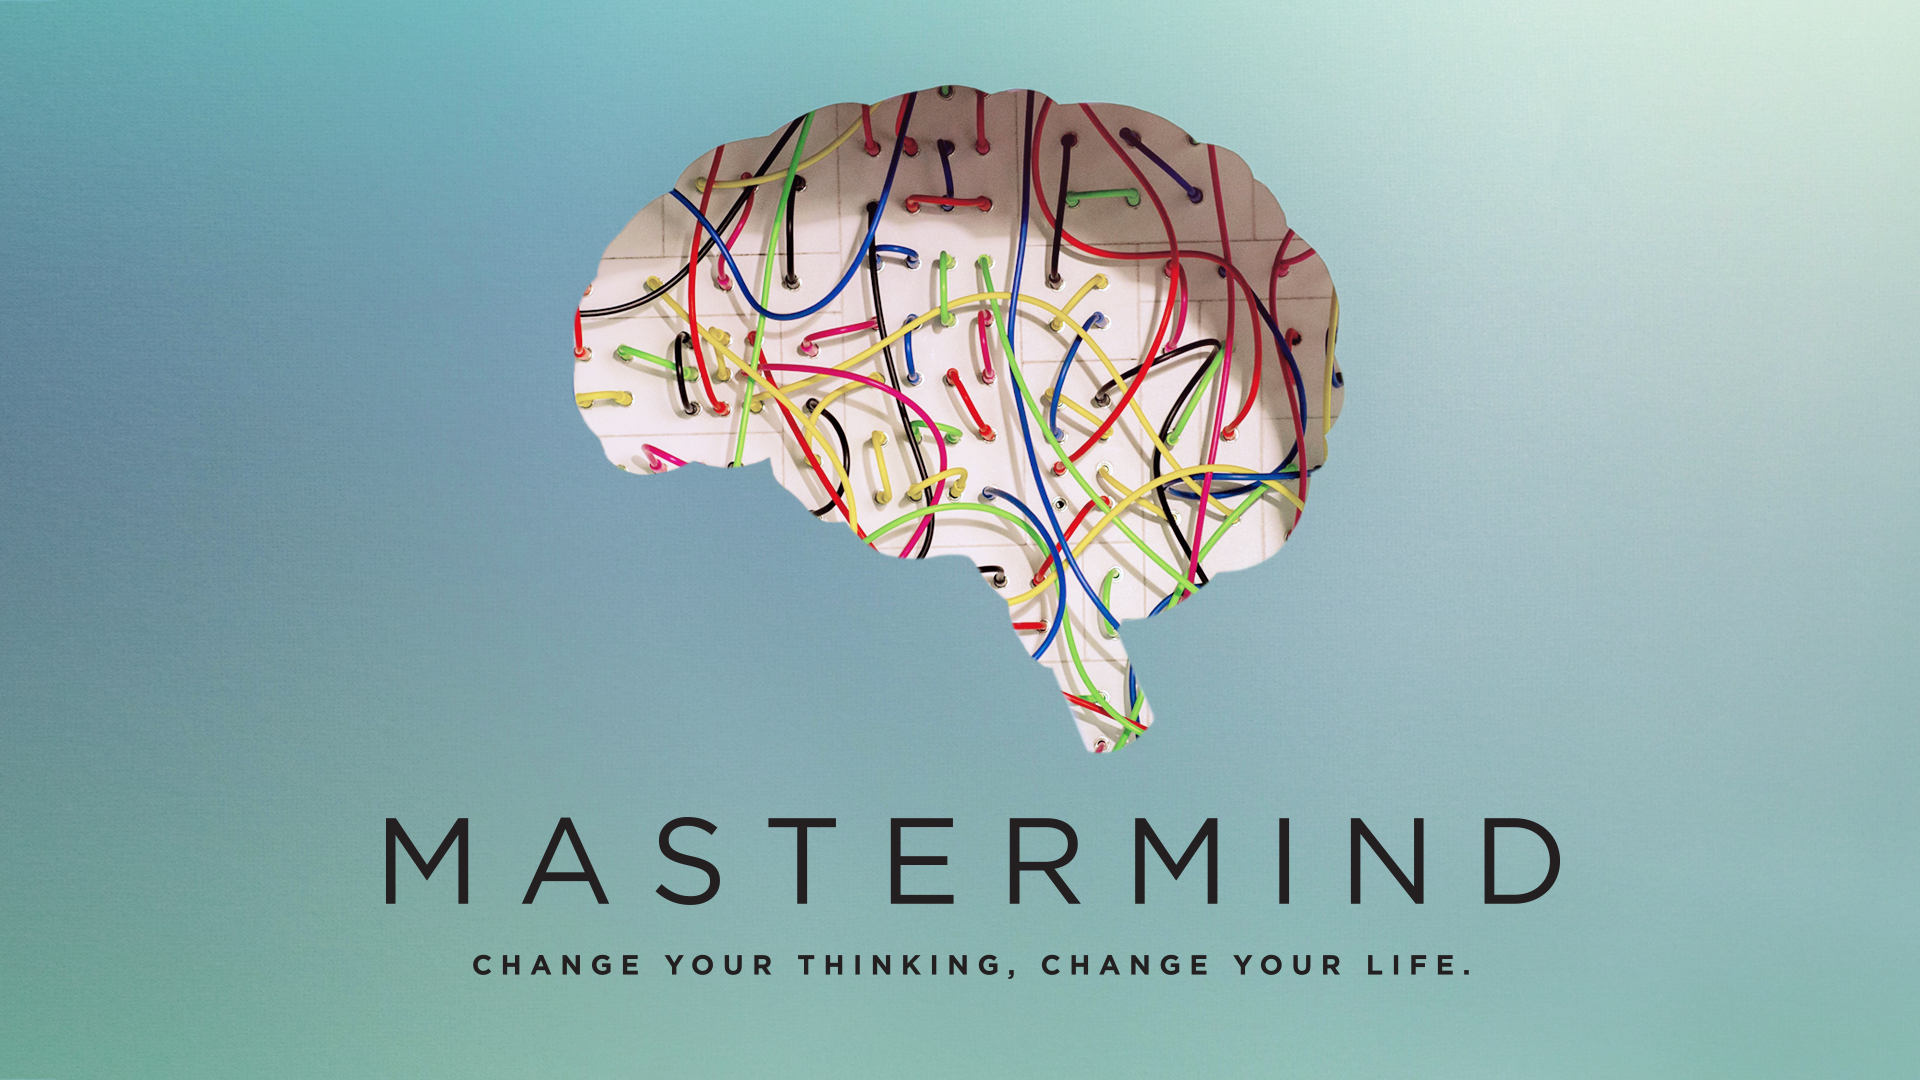 Mastermind_Artwork_Horizontal.jpg